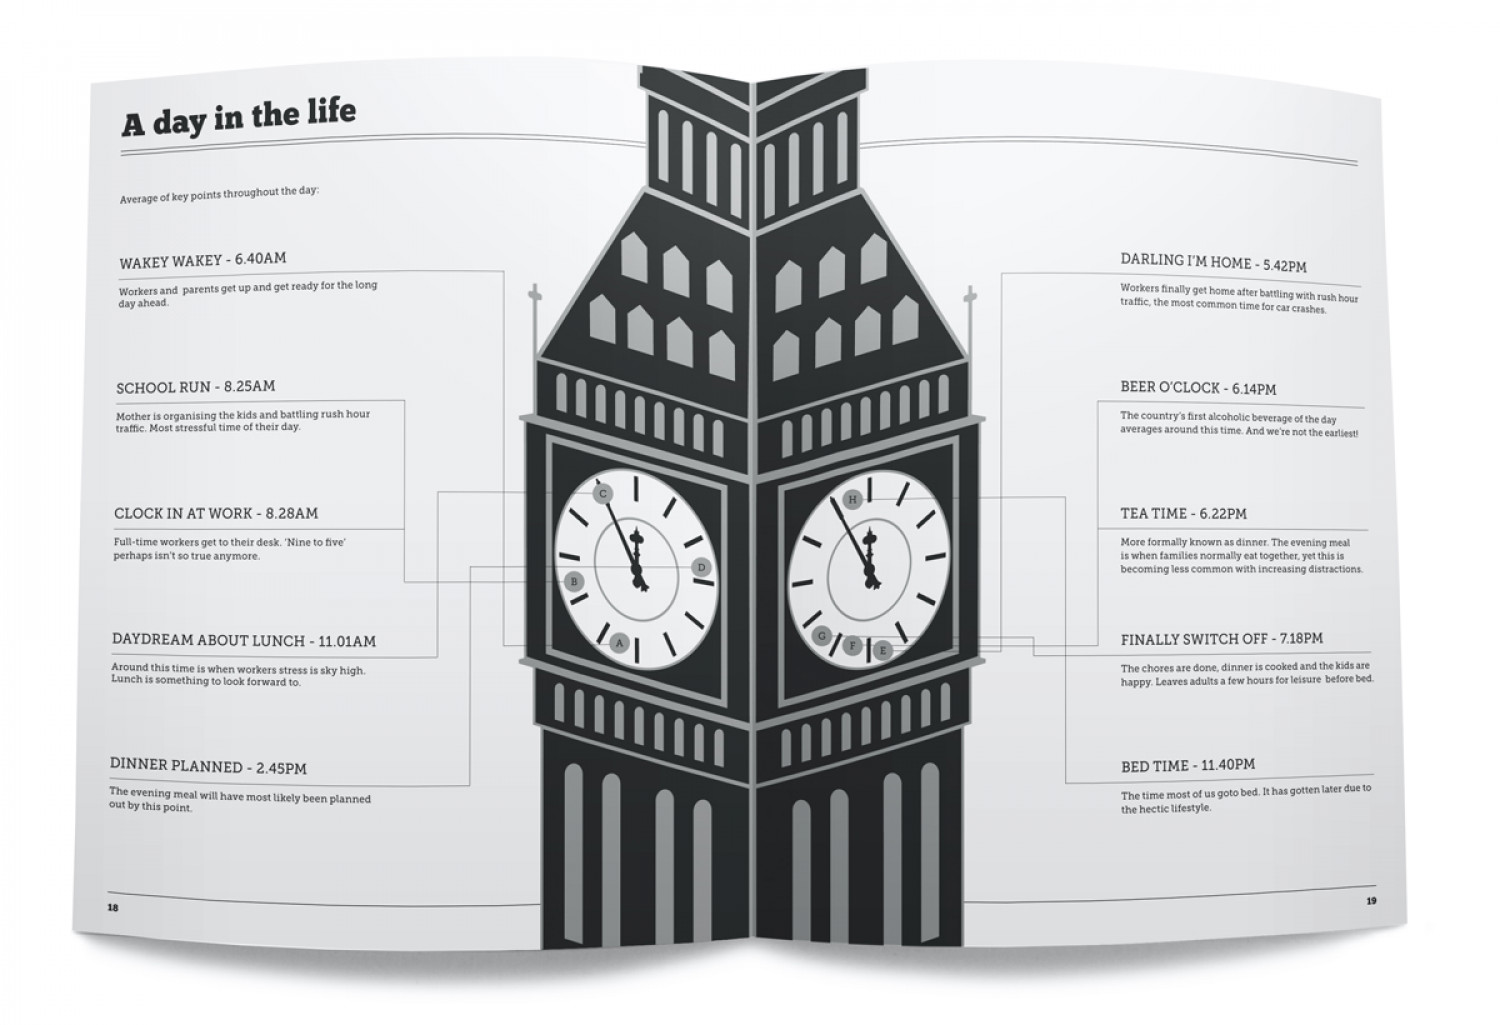 A Day in the Life of a Brit: Britistics Infographic